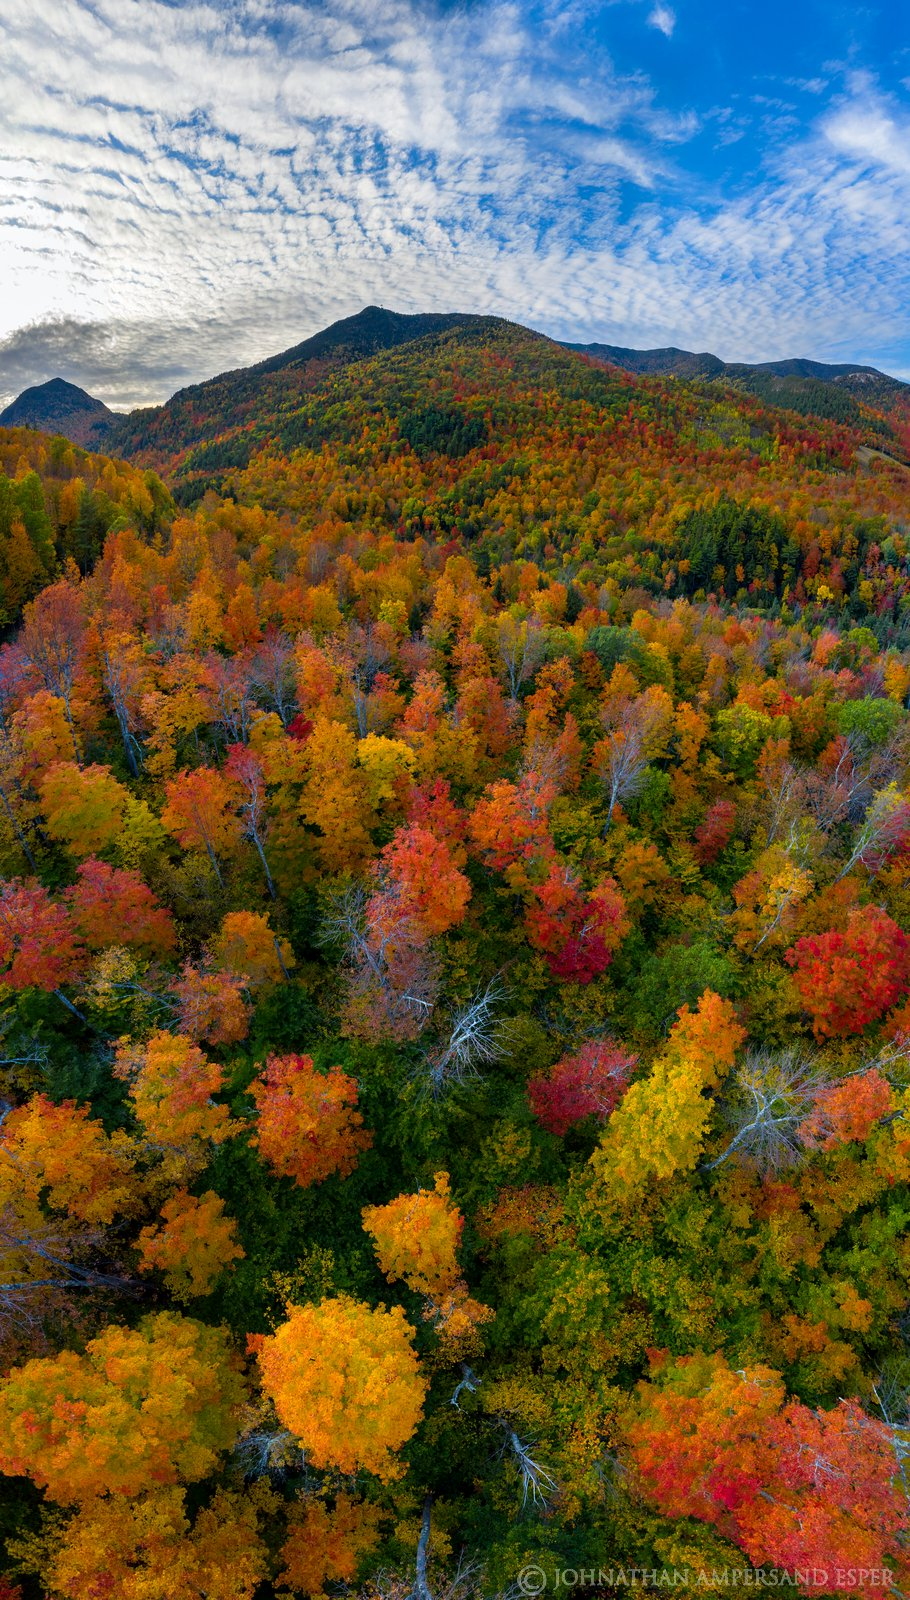 Whiteface Mt rising above the colorful forest near High Falls Gorge